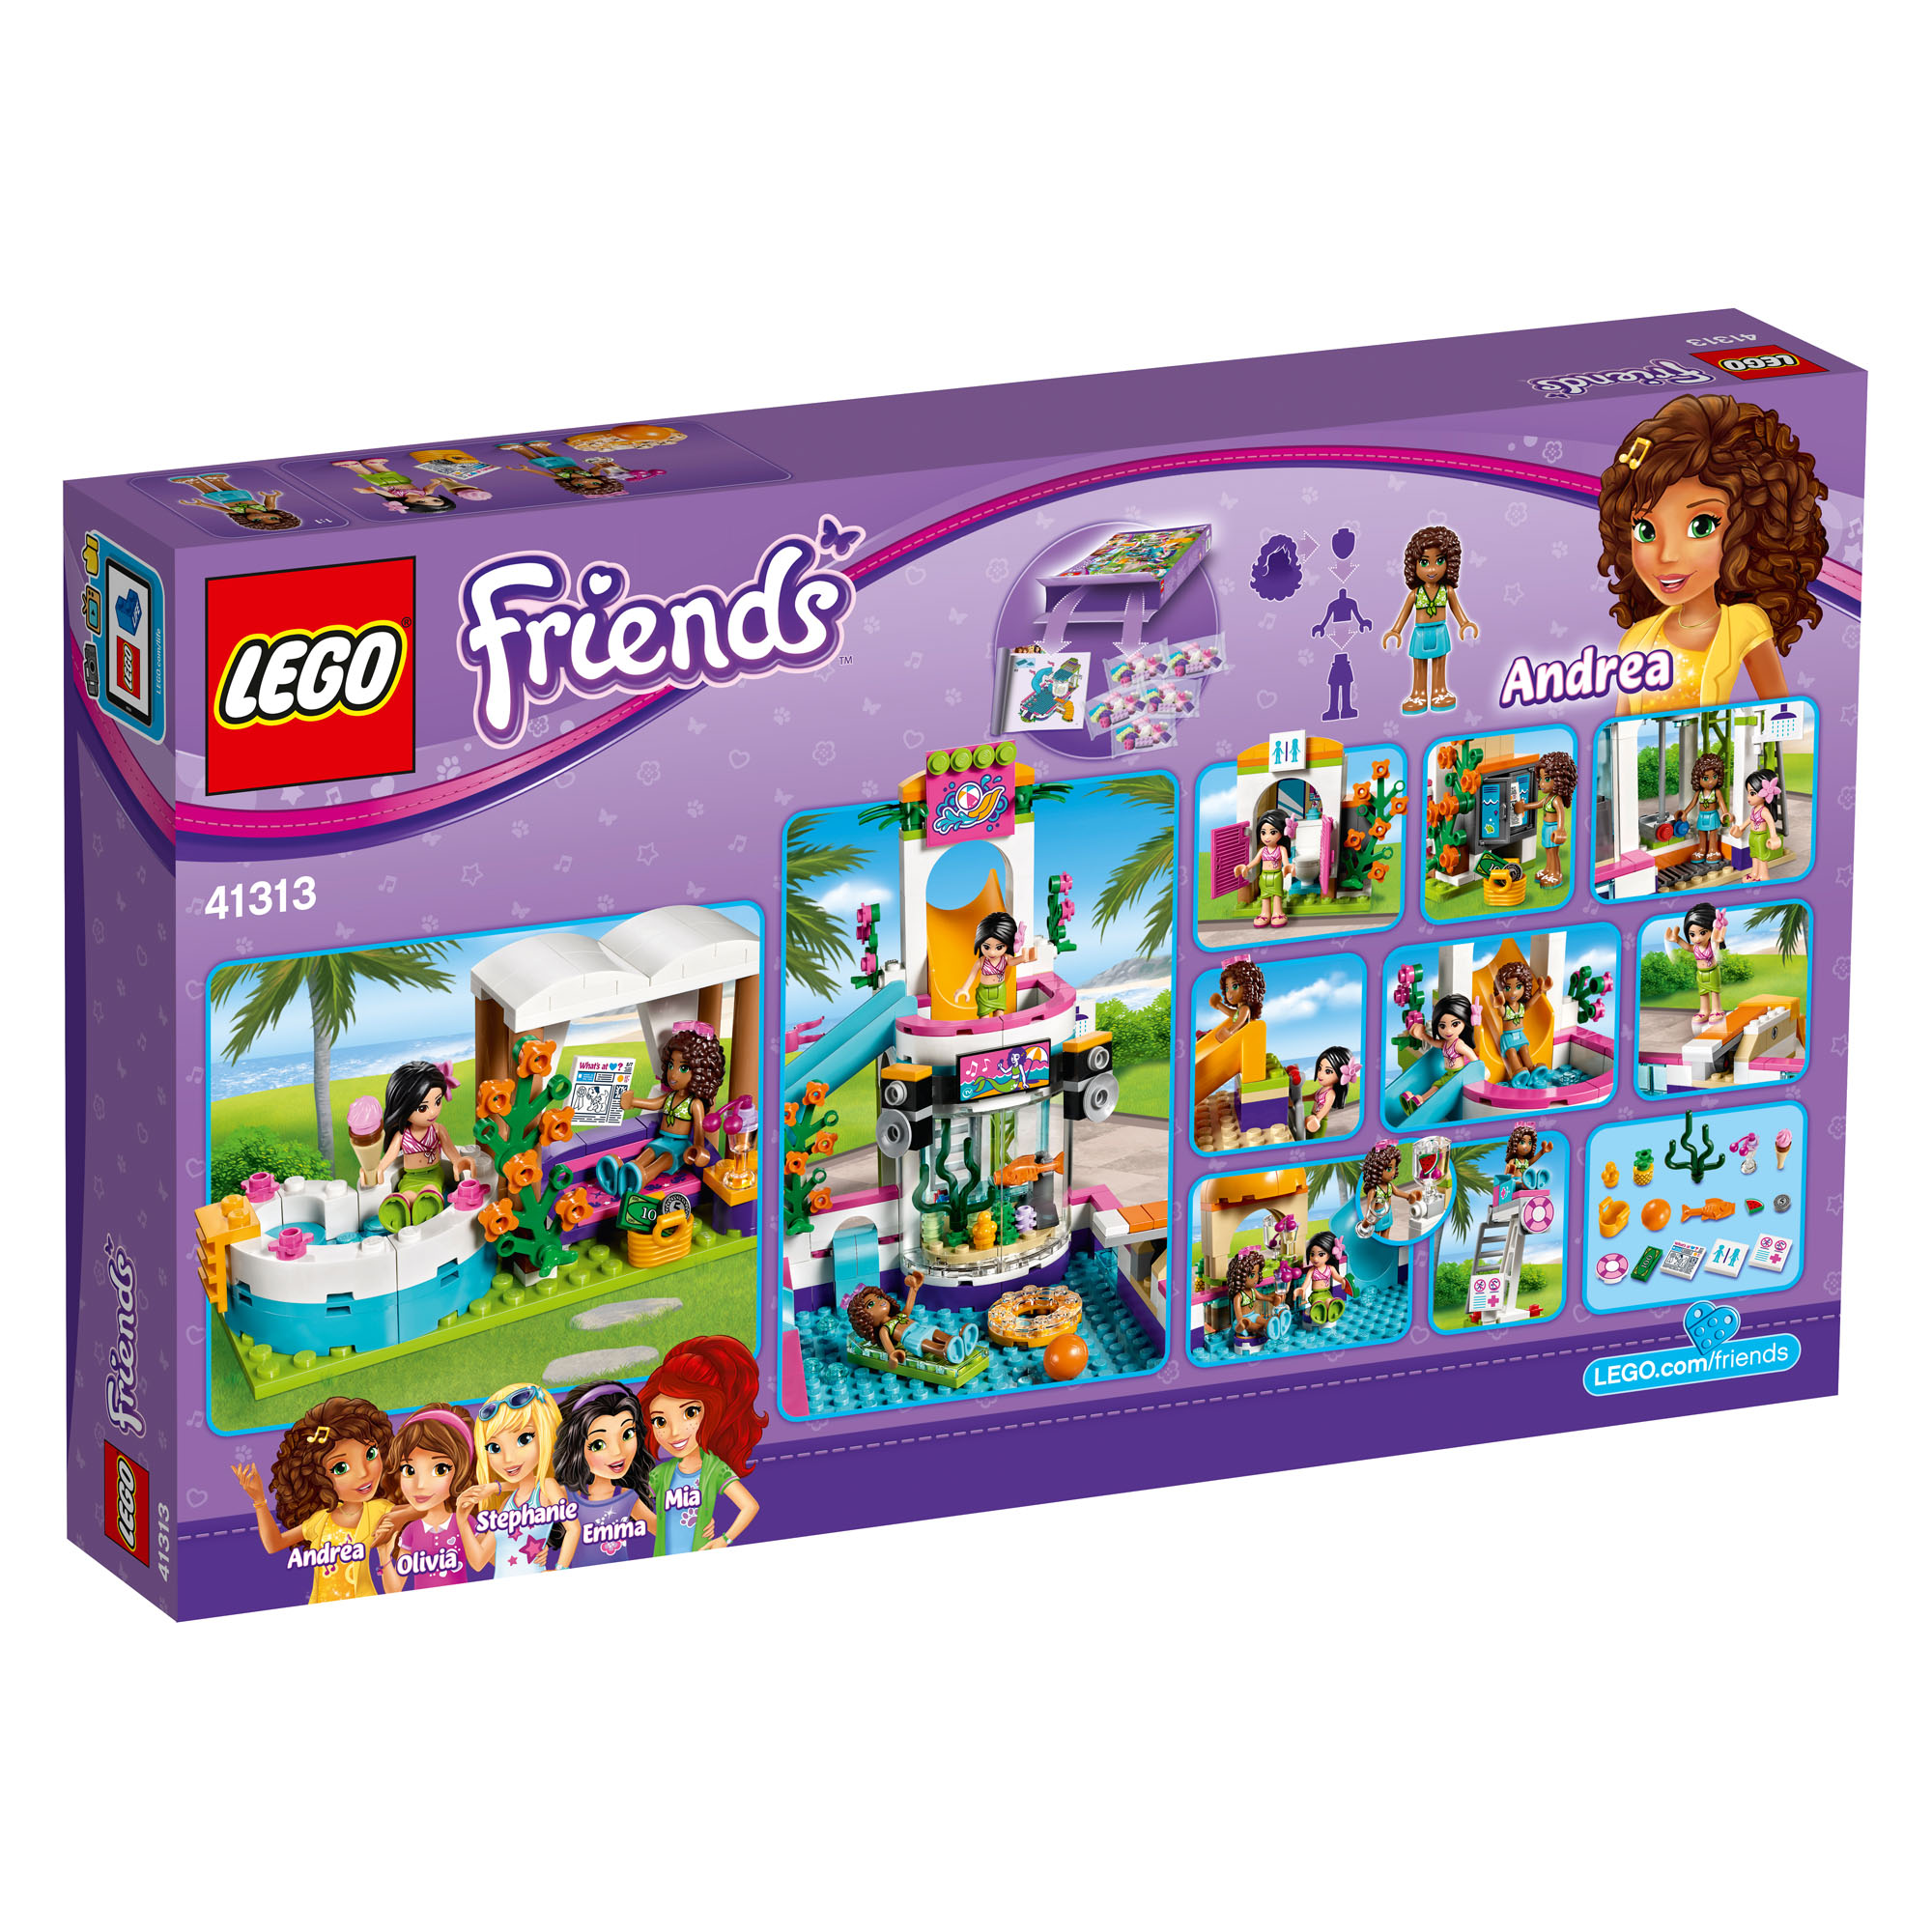 Details About 41313 Lego Friends Heartlake Summer Pool Andrea Martina 589 Pcs 6 12 New 2017